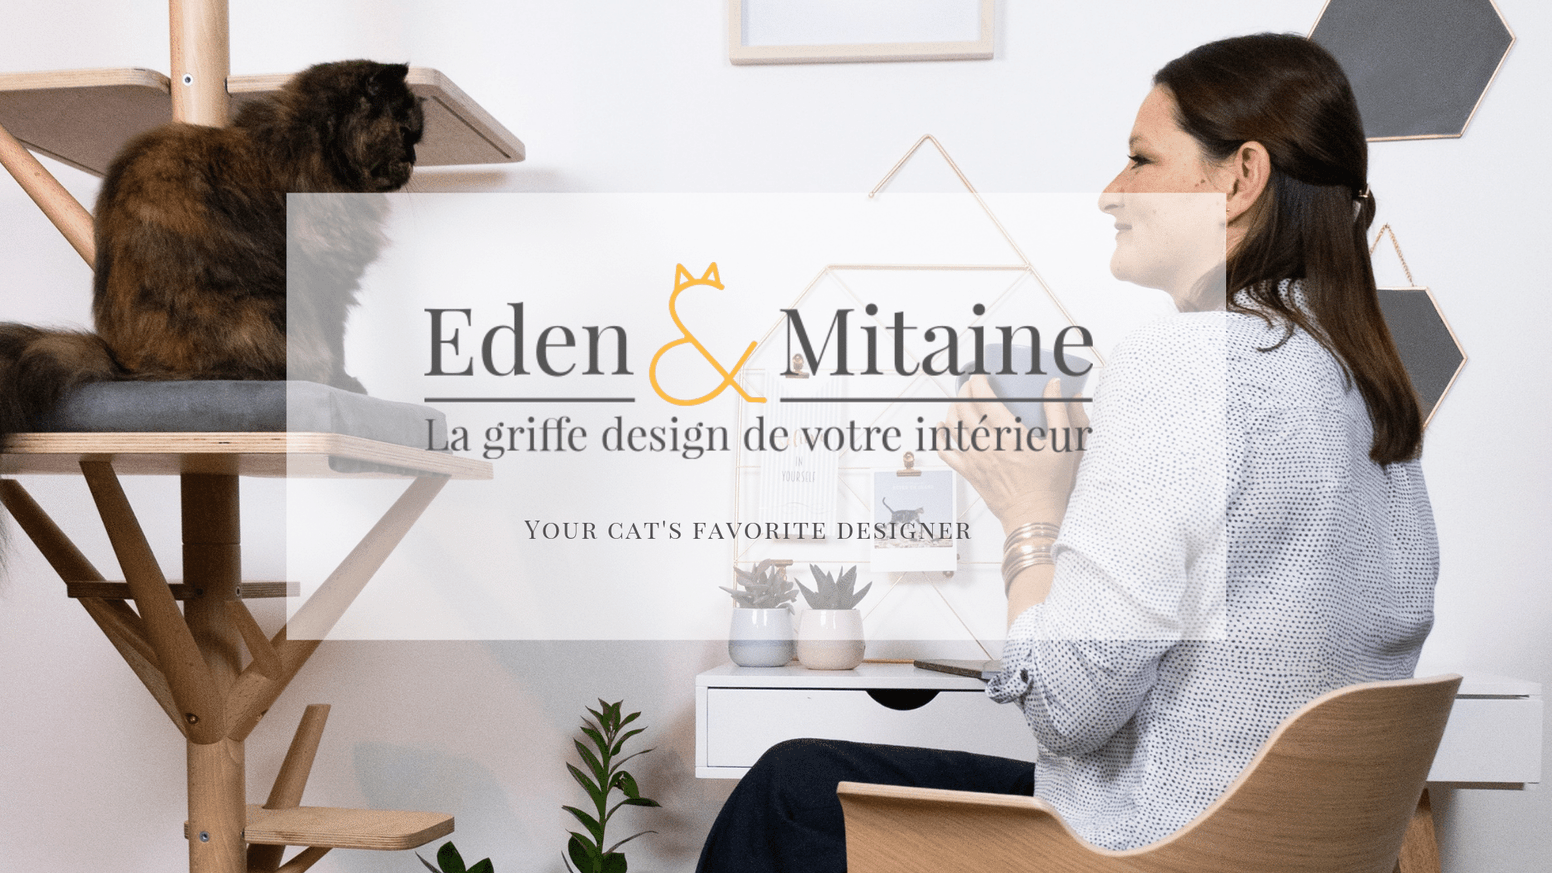 Designed furniture for home and cat well-being / Sublimez votre maison tout en améliorant le bien-être de votre chat.